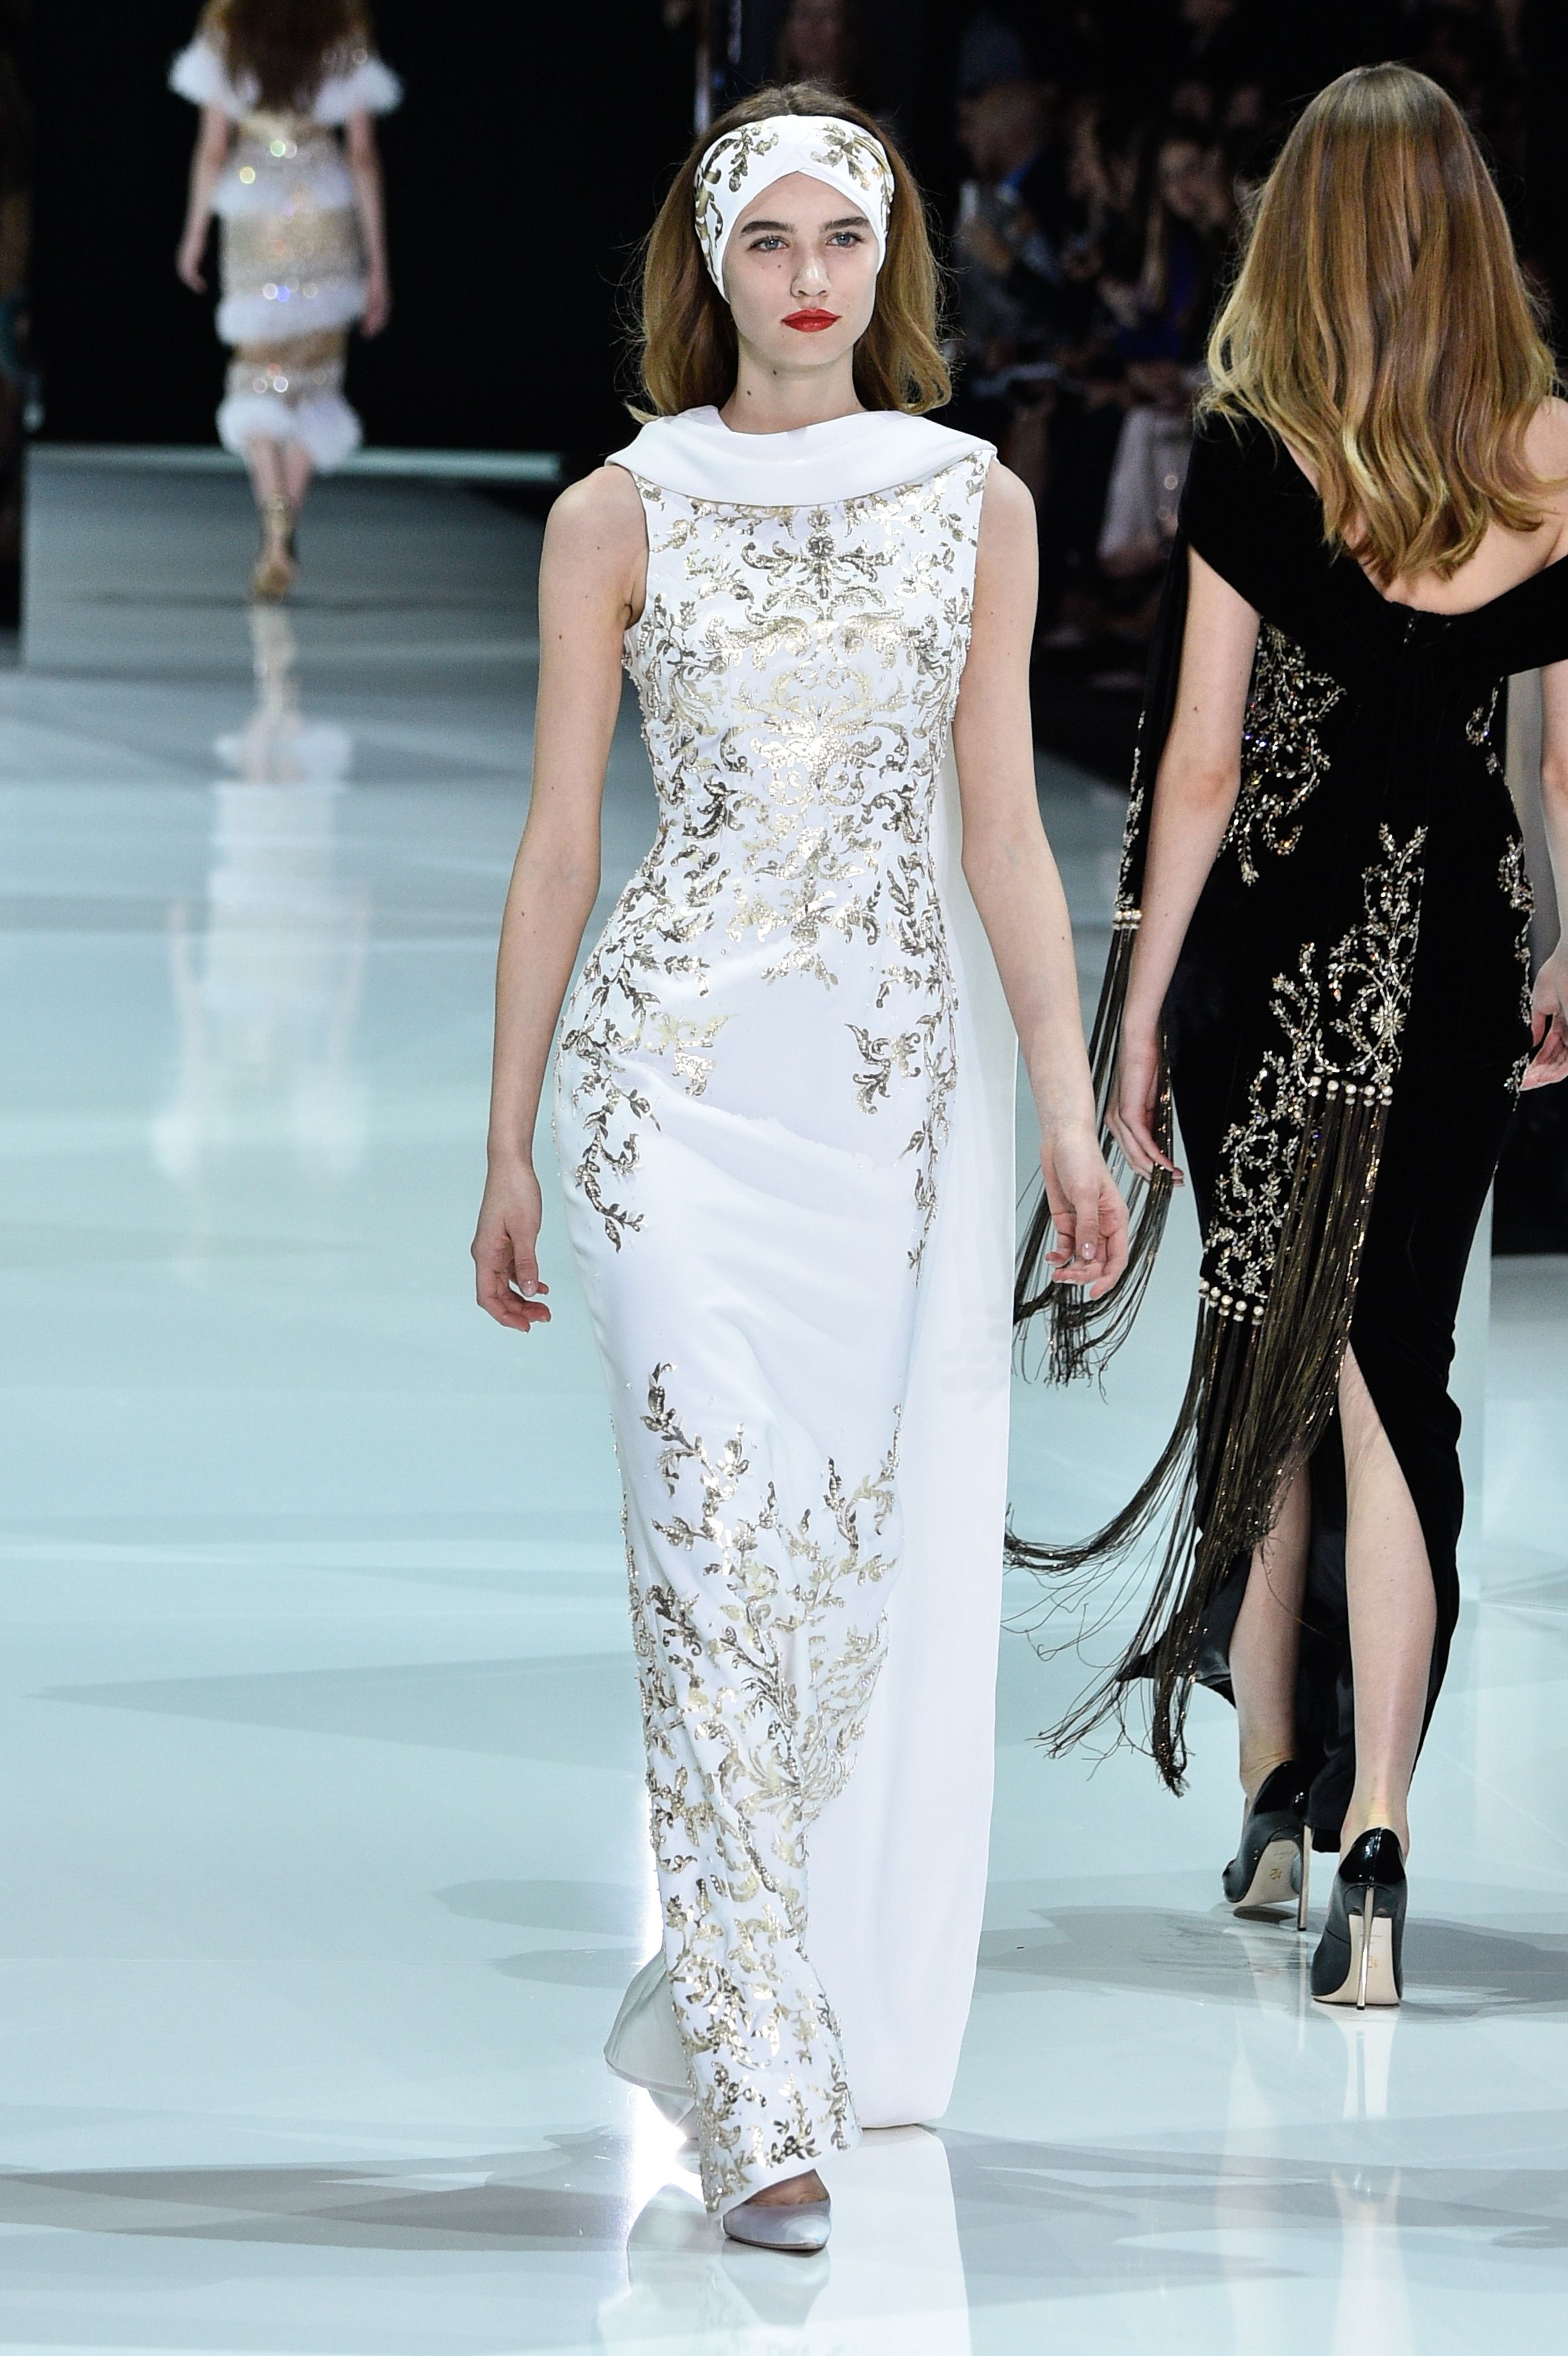 Wedding dress inspiration from the couture catwalks